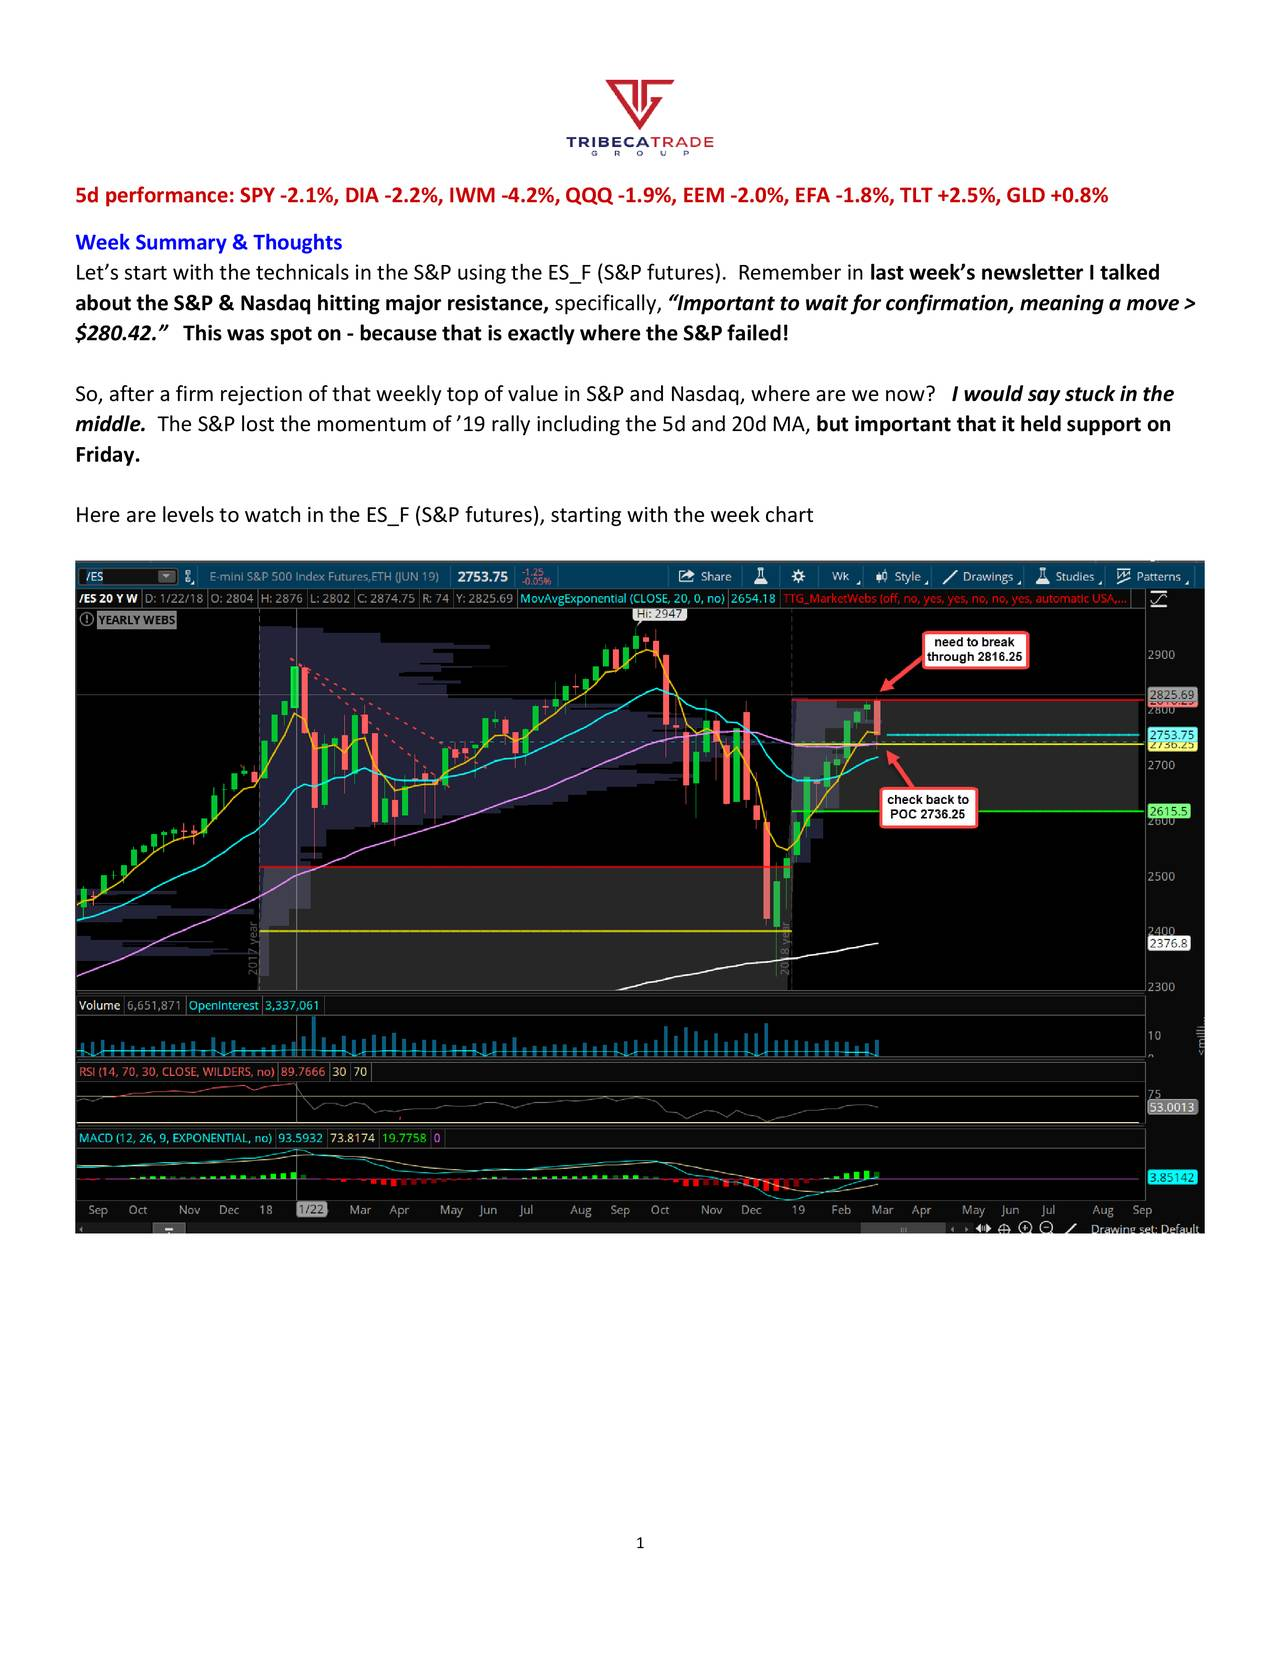 """Week Summary & Thoughts Let's start with the technicals in the S&P using the ES_F (S&P futures). Remember in last week's newsletter I talked about the S&P & Nasdaq hitting major resistance, specifically, """"Important to wait for confirmation, meaning a move > $280.42."""" This was spot on - because that is exactly where the S&P failed! So, after a firm rejection of that weekly top of value in S&P and Nasdaq, where are we now? I would say stuck in the middle. The S&P lost the momentum of '19 rally including the 5d and 20d MA, but important that it held support on Friday. Here are levels to watch in the ES_F (S&P futures), starting with the week chart 1"""